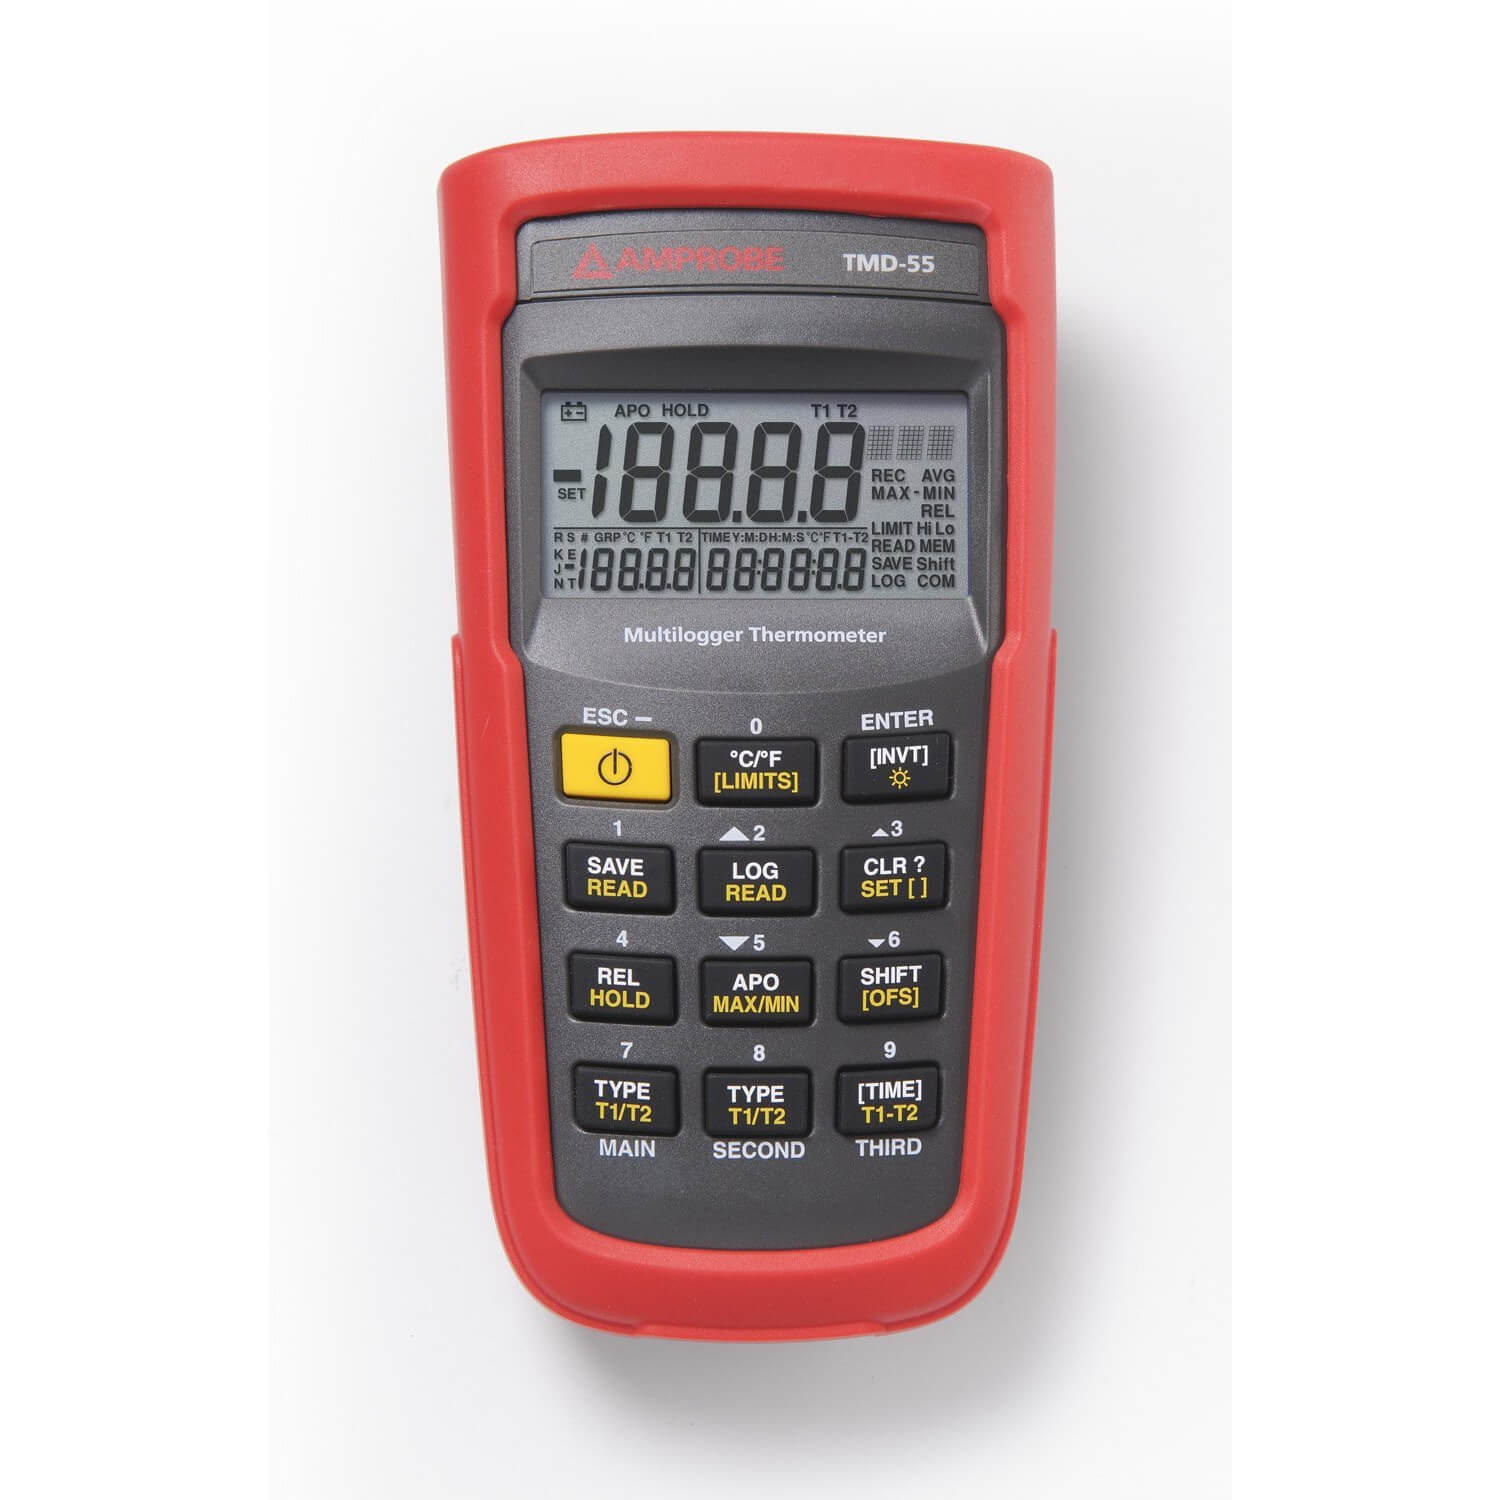 Amprobe TMD-55 Thermocouple Multilogger Thermometer